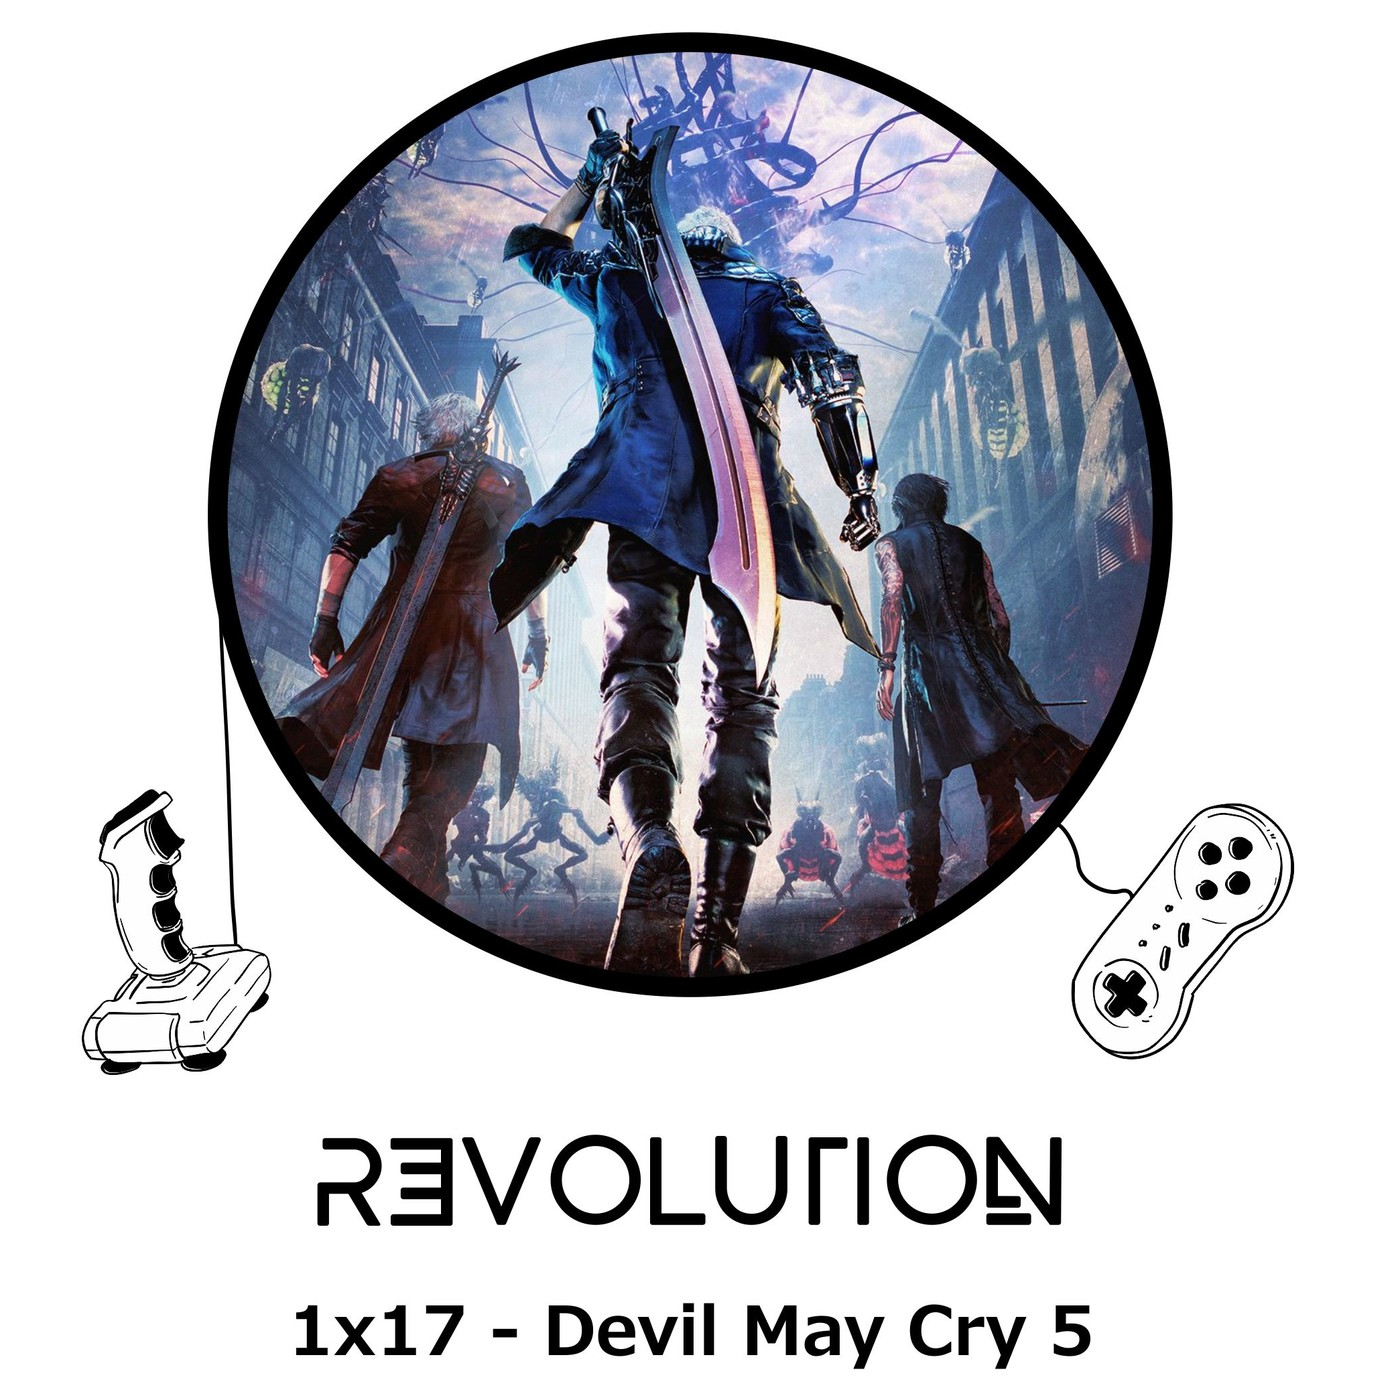 Revolution Podcast - 1x17 - Devil May Cry 5